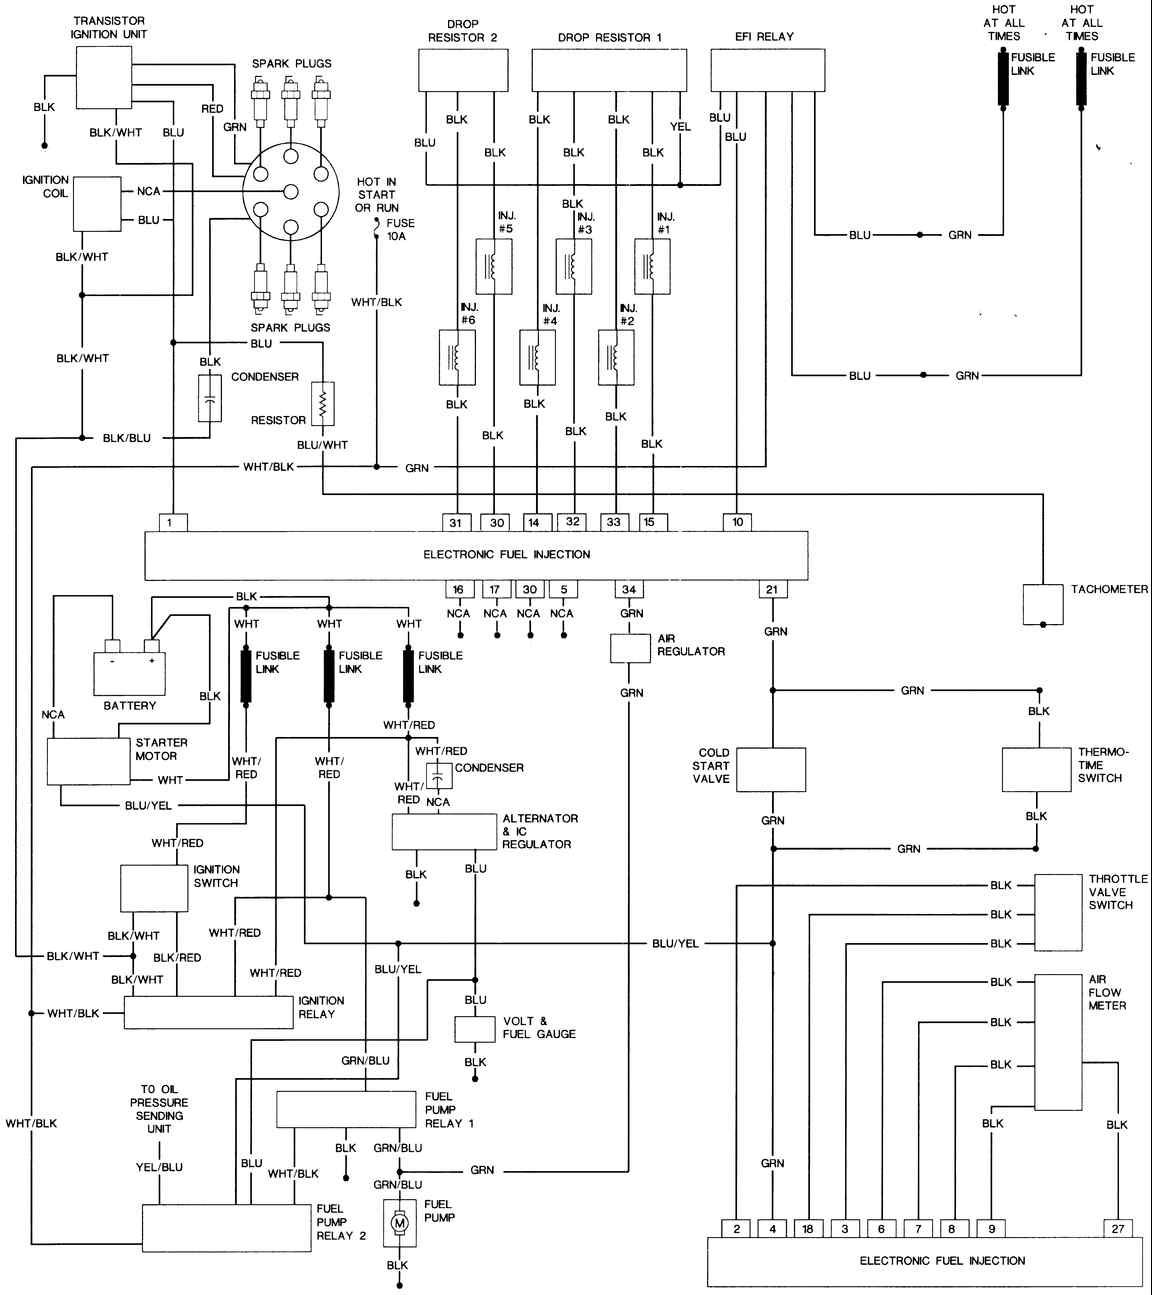 Nissan 280zx Heater Wiring Diagram Trusted Car Audio Diagrams Boss 870dbi Schematic For 2006 Altima Dash Lights Datsun